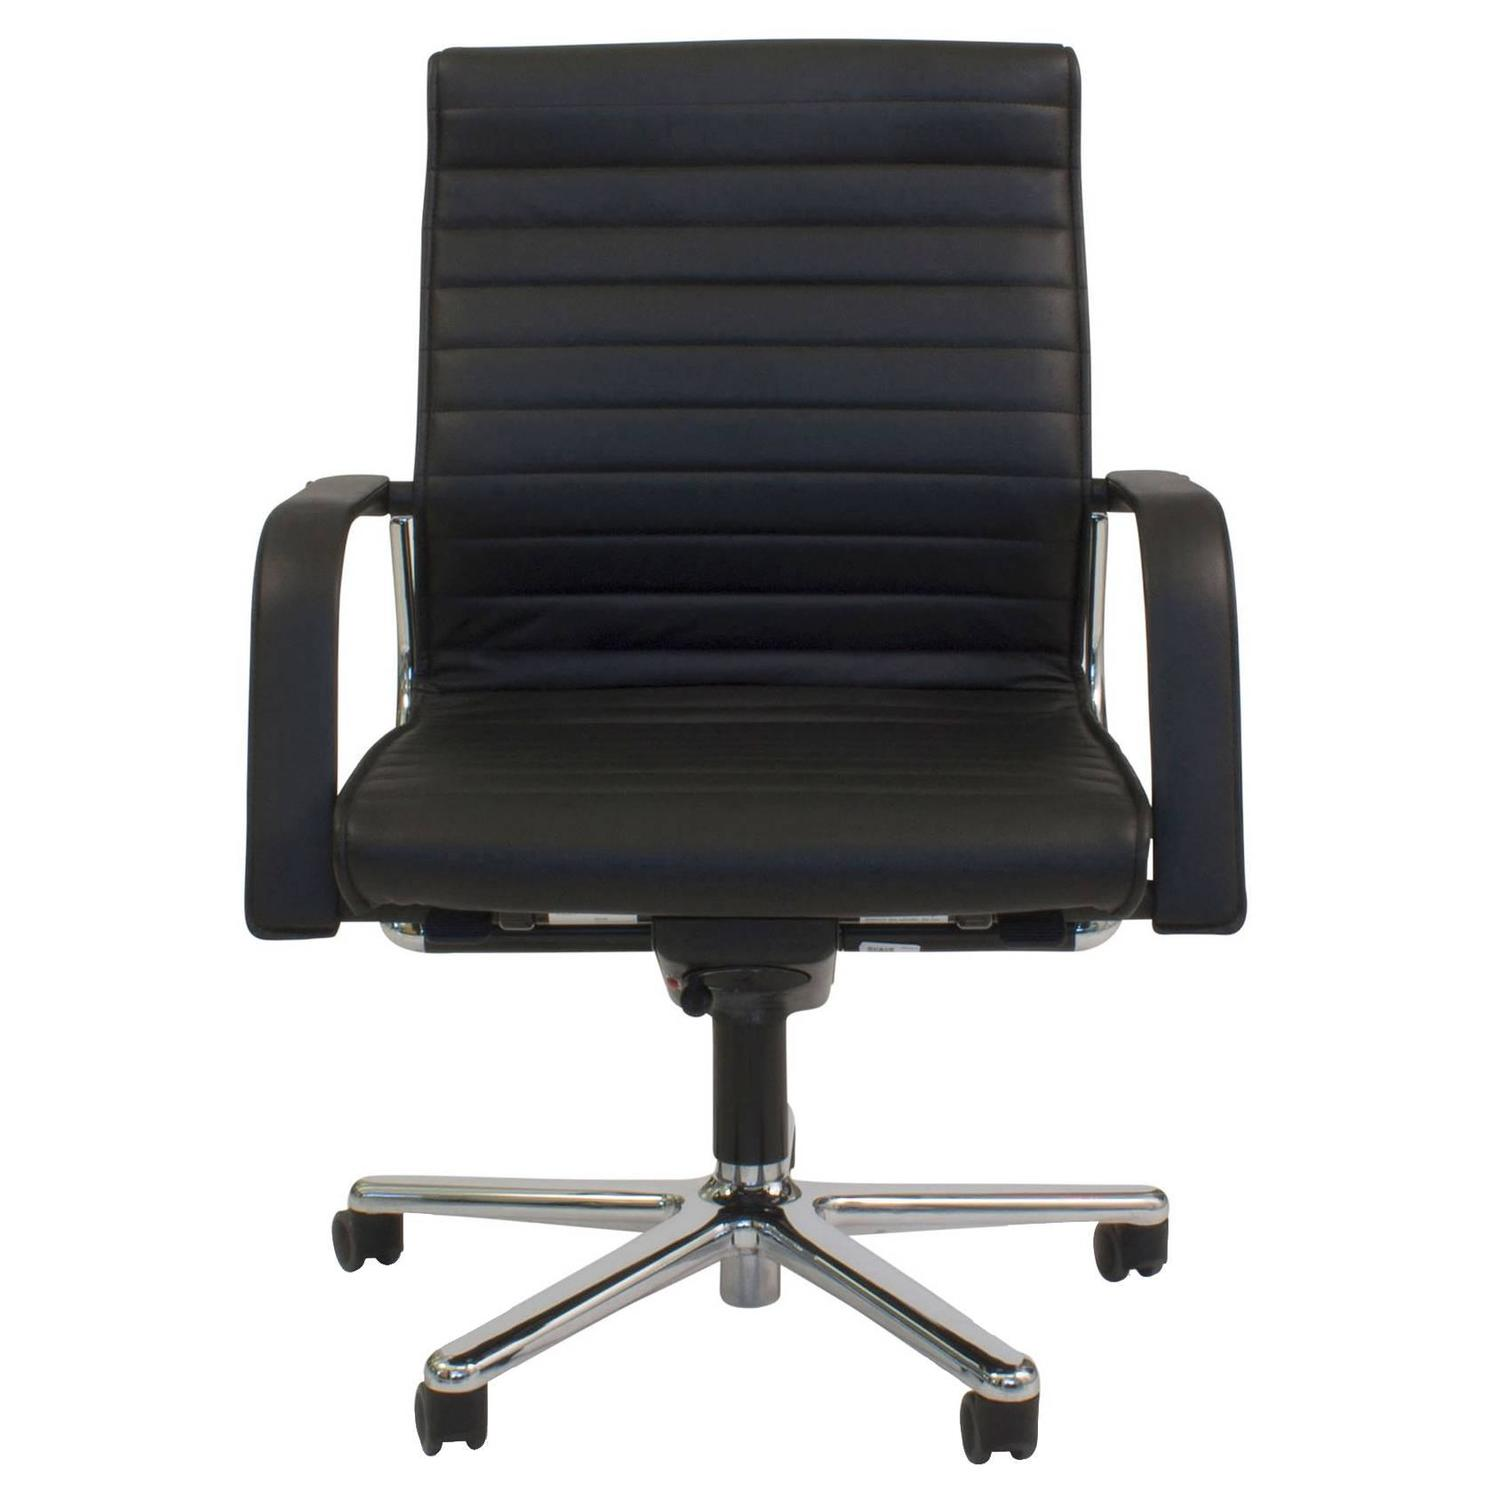 Black Leather FS 220 82 fice Swivel Task Chair by Franck and